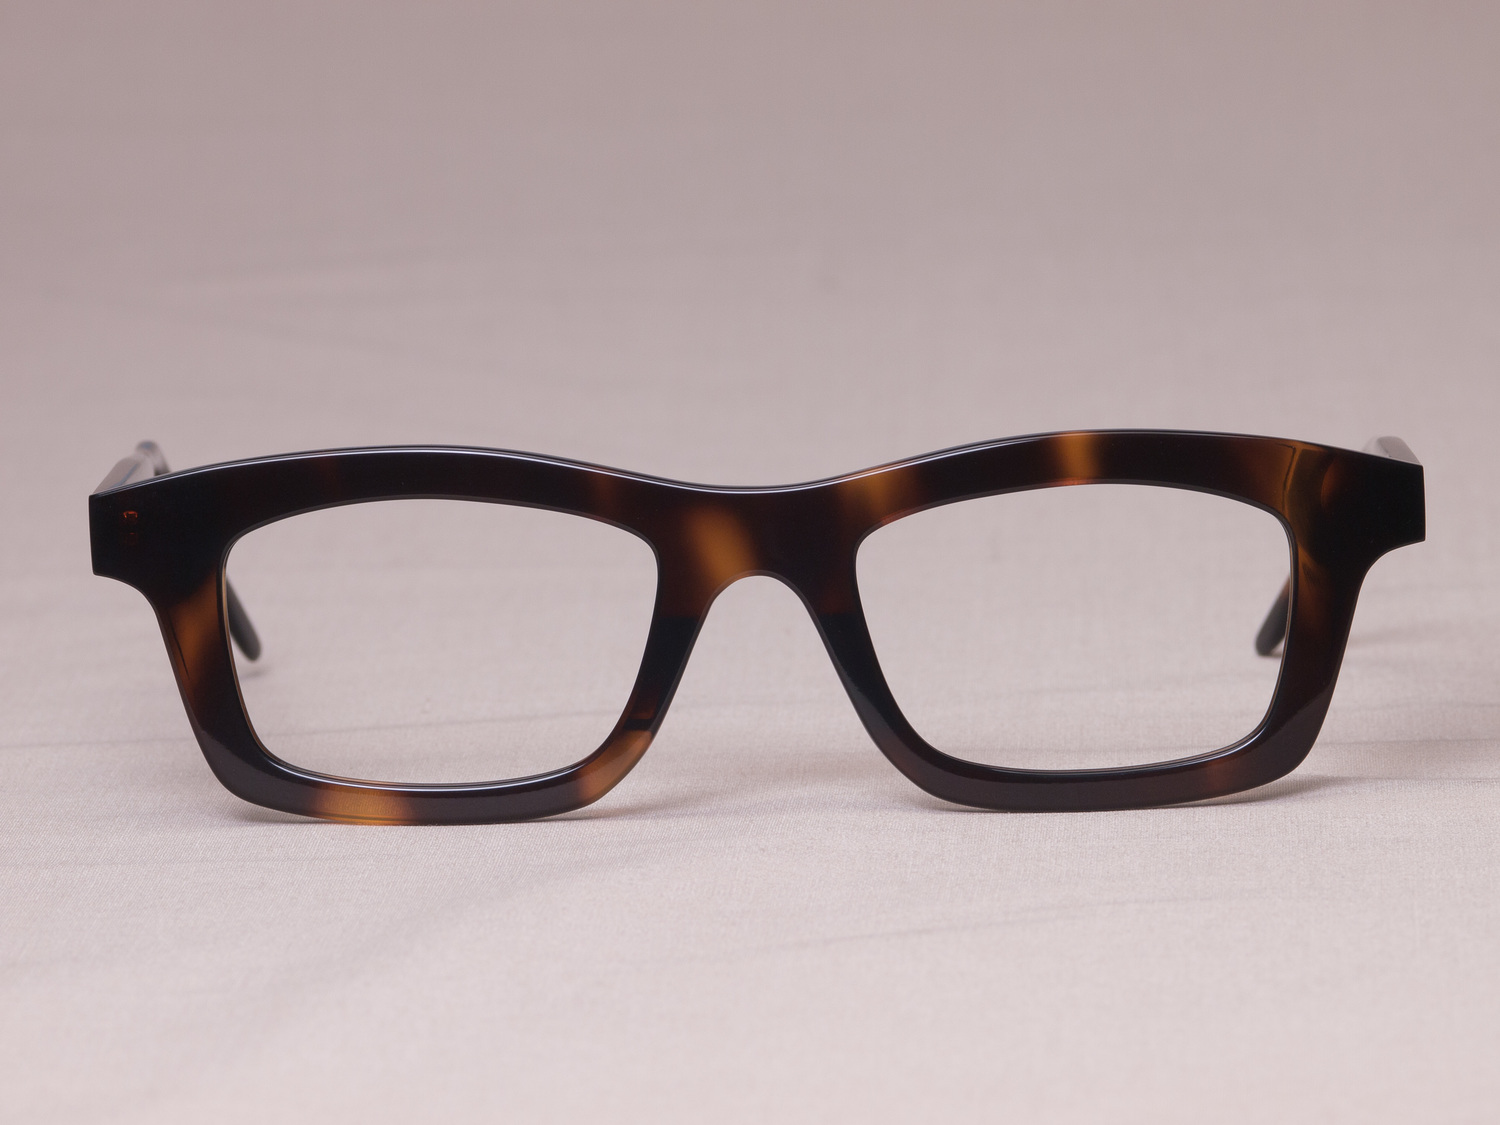 Indivijual-Custom-Glasses-7.jpg